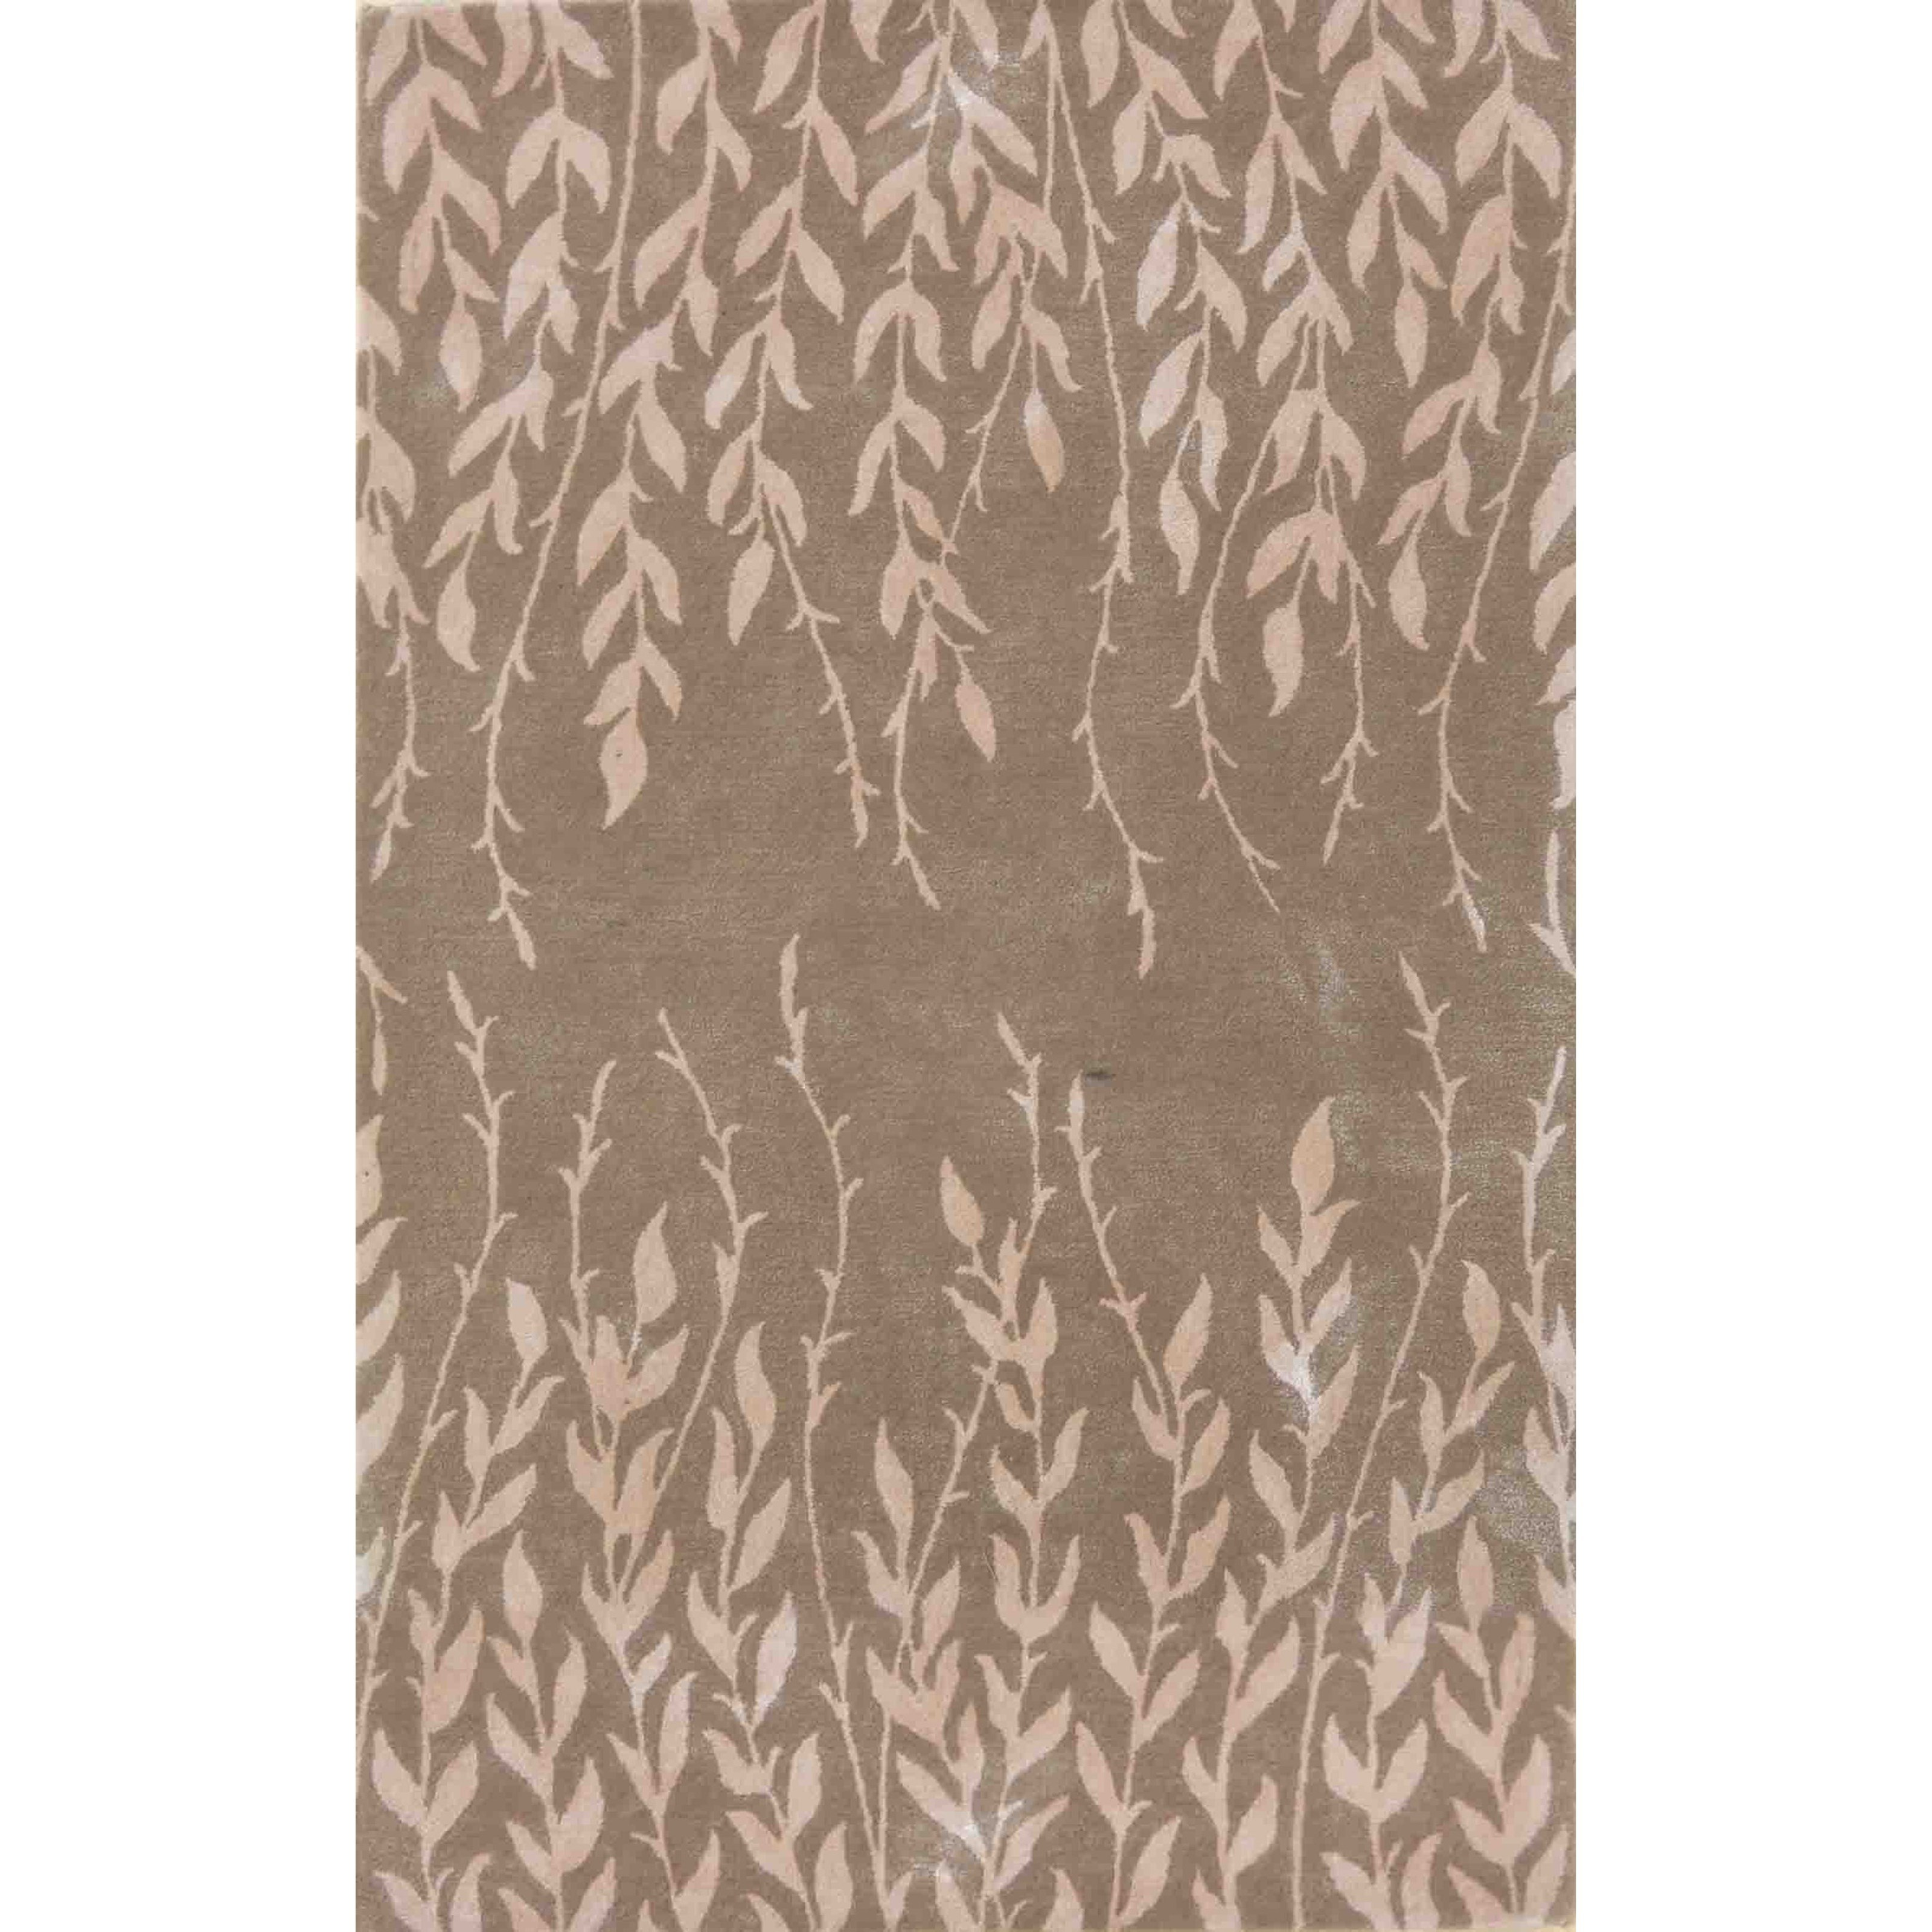 8' X 11' Beige Tranquility Area Rug